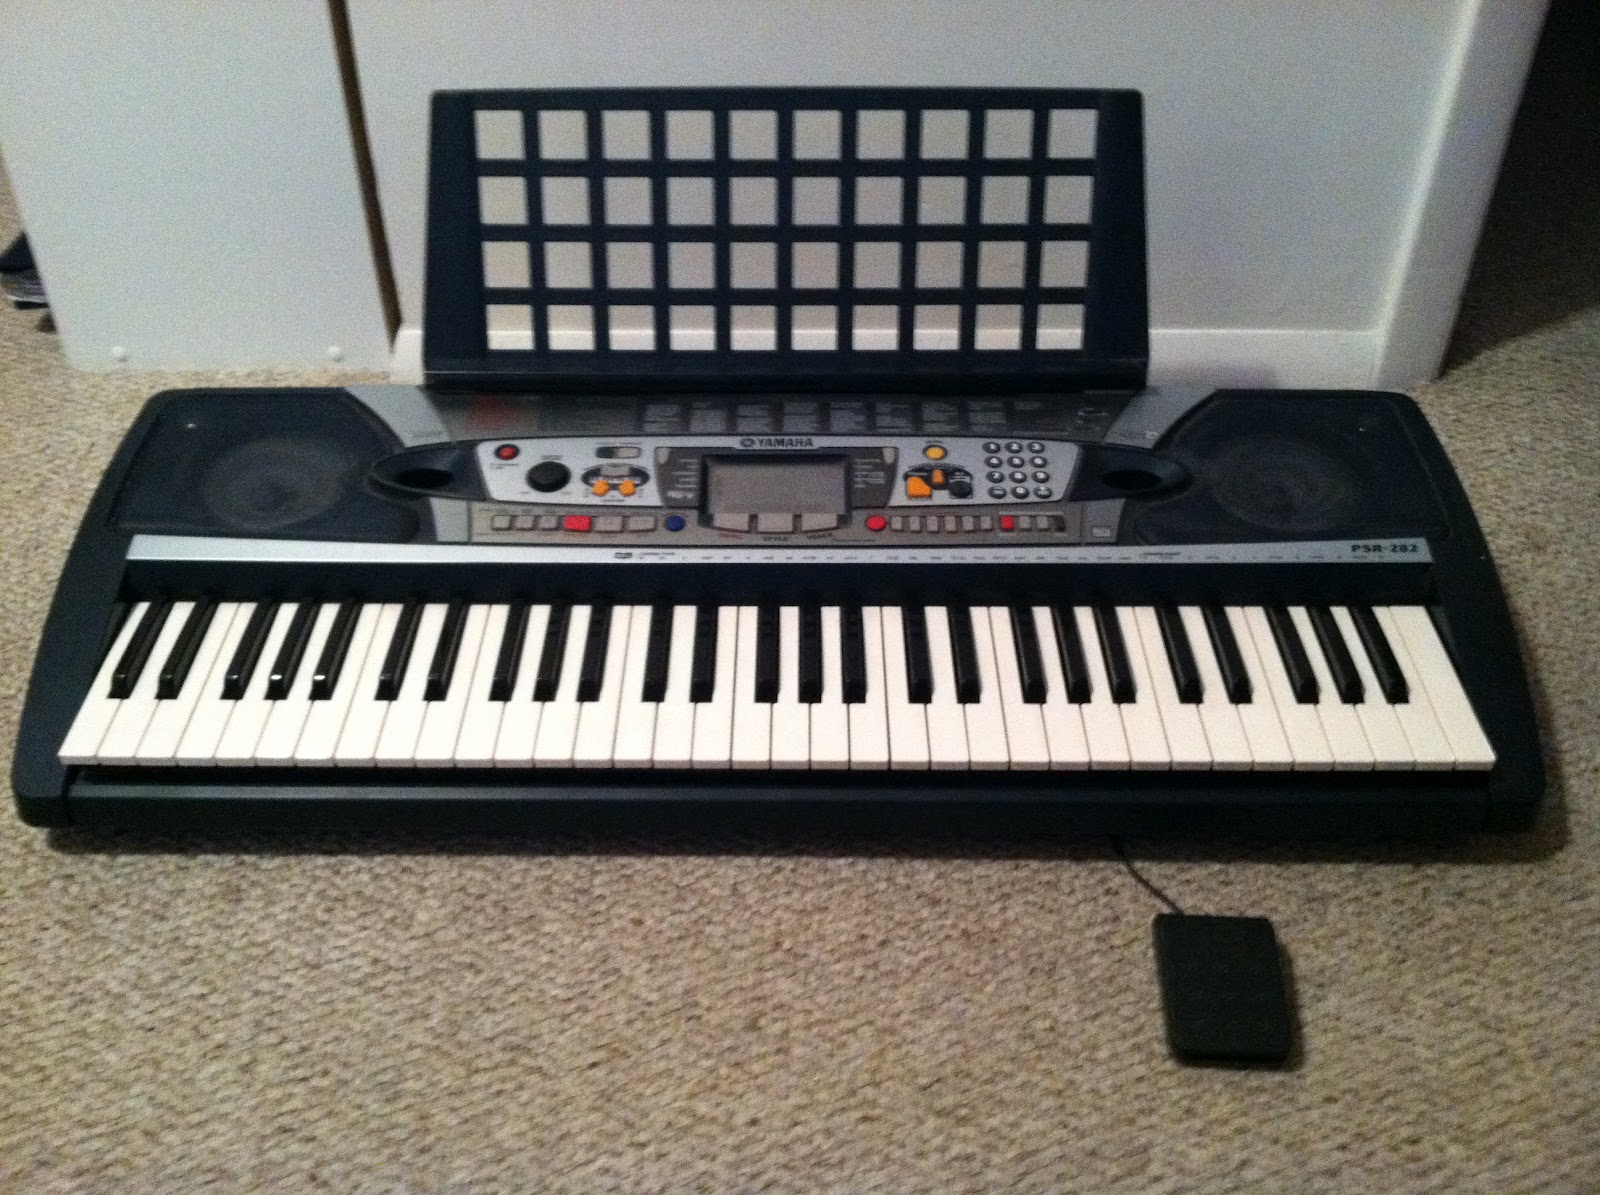 wanna buy our stuff sold yamaha portable keyboard 65 obo rh risandtevansellstuff blogspot com Portable Yamaha Keyboards PSR-282 Yamaha PSR 280